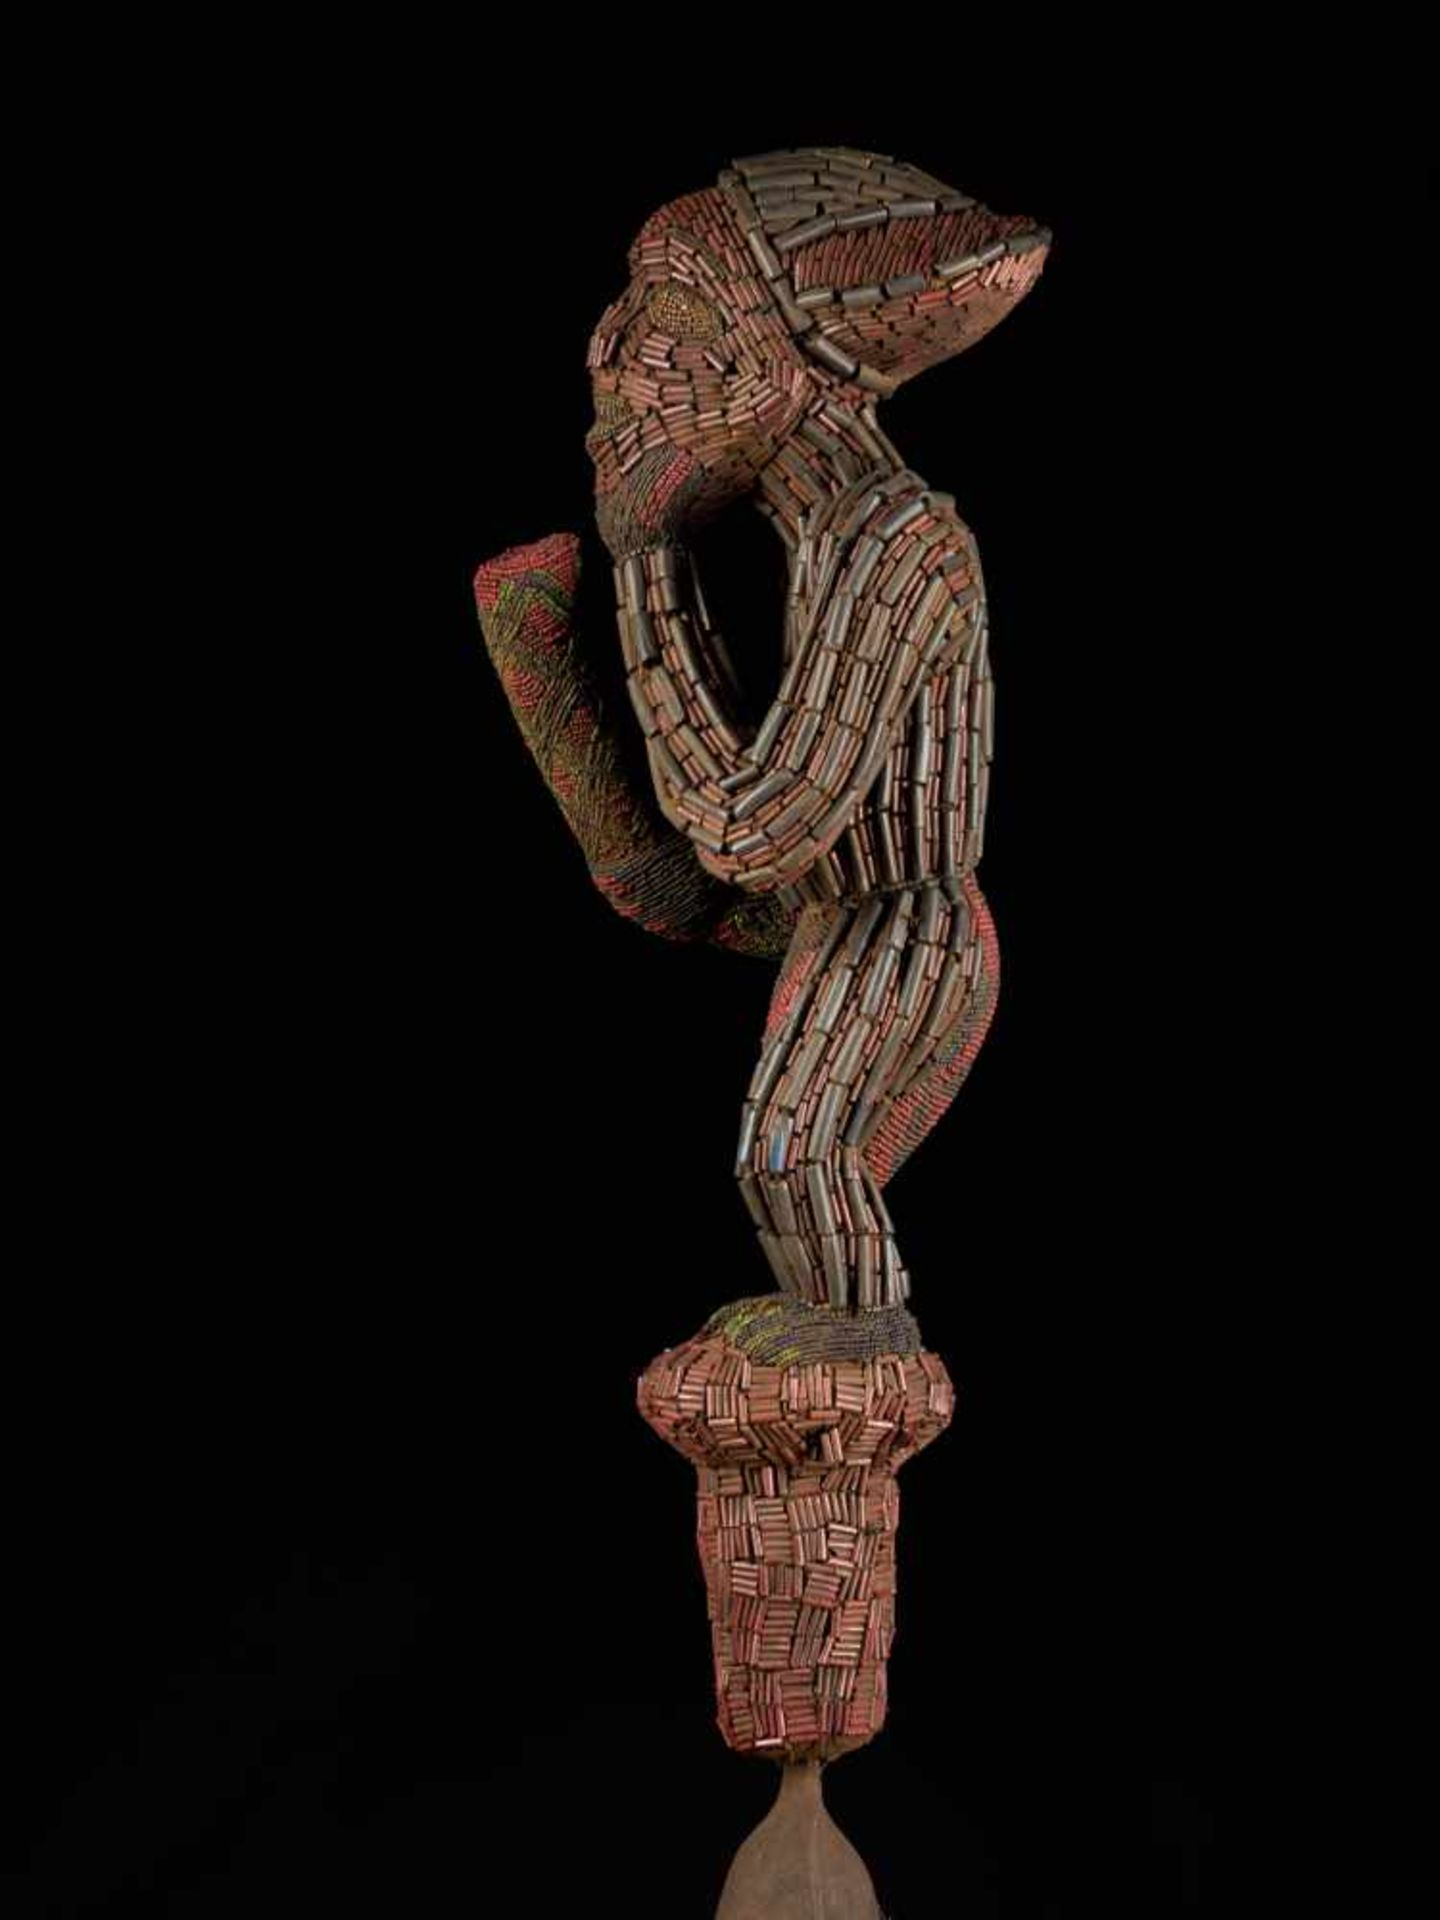 Ceremonial Royal Gong With Beaded Figure - Tribal ArtThis ceremonial gong features a gorgeous figure - Bild 8 aus 8